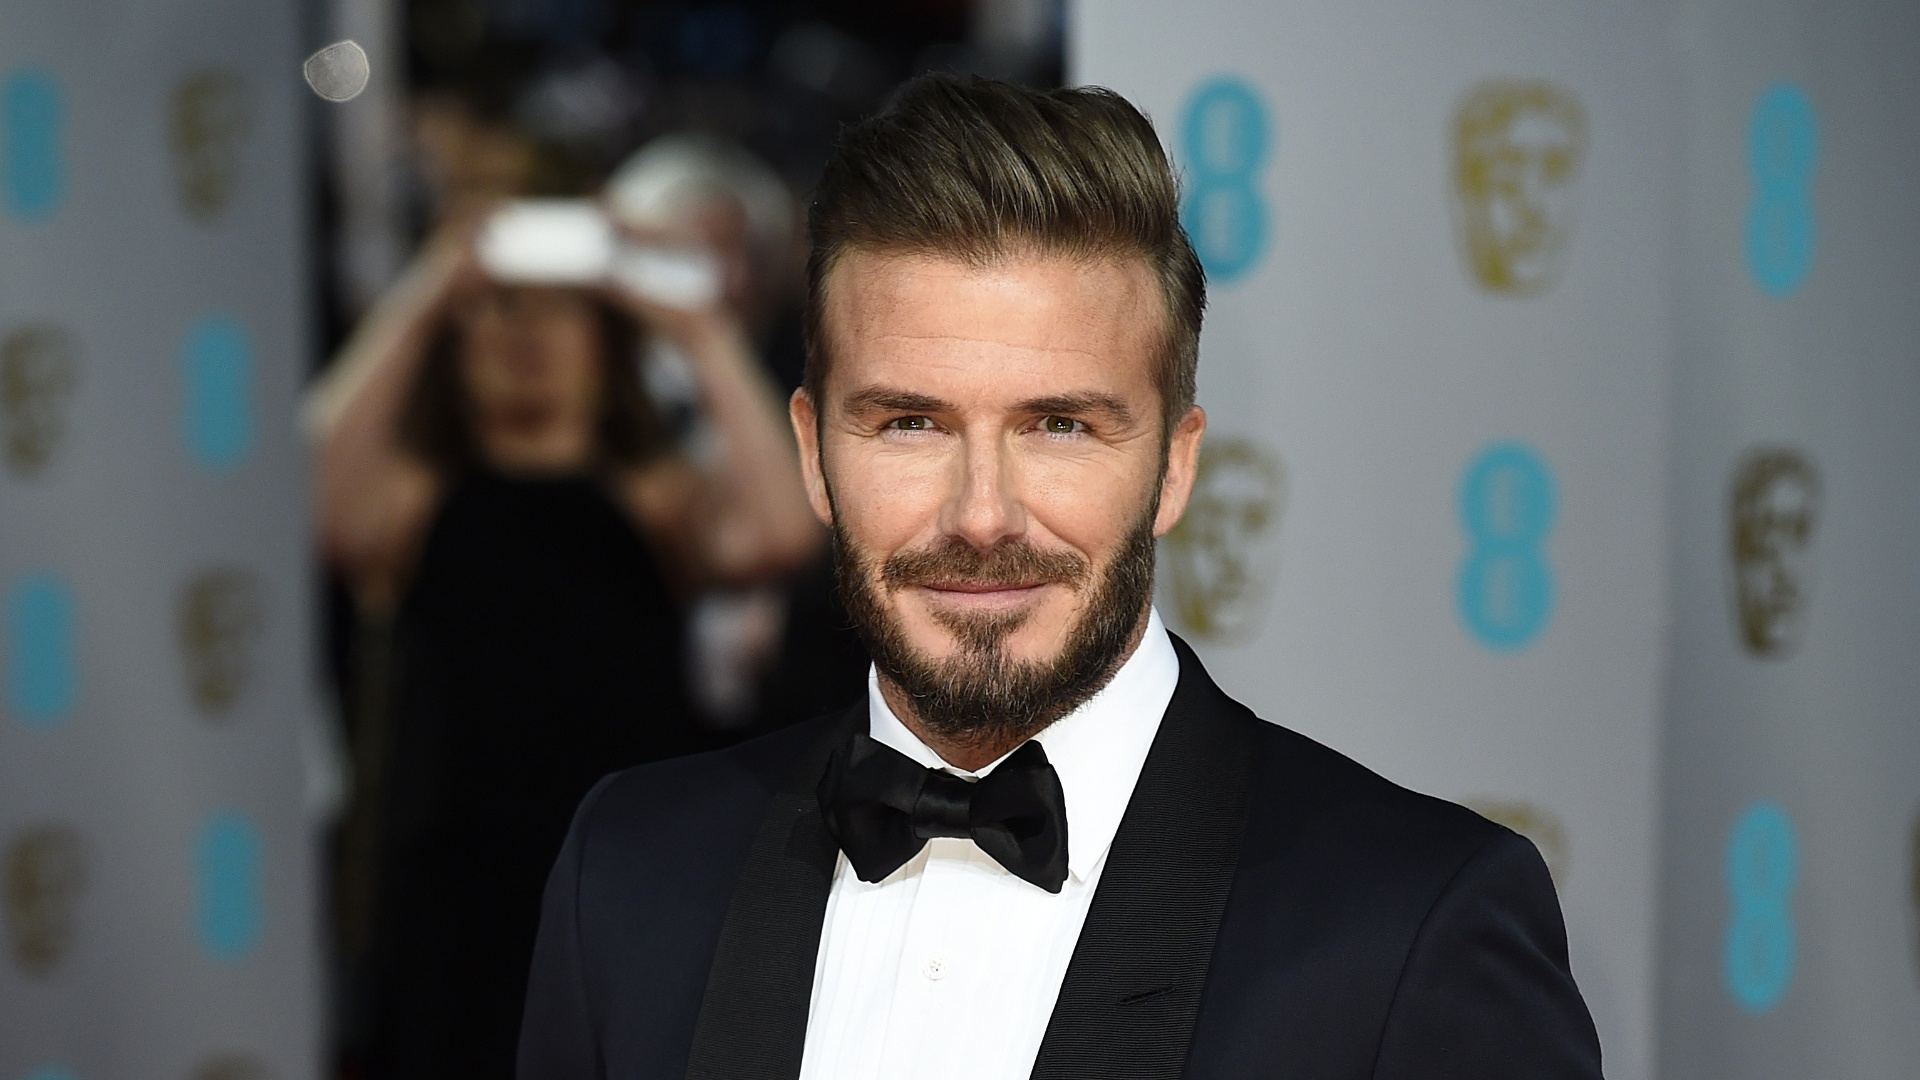 David Beckham Shines In Tom Ford At 2015 BAFTA Awards | Fashion.